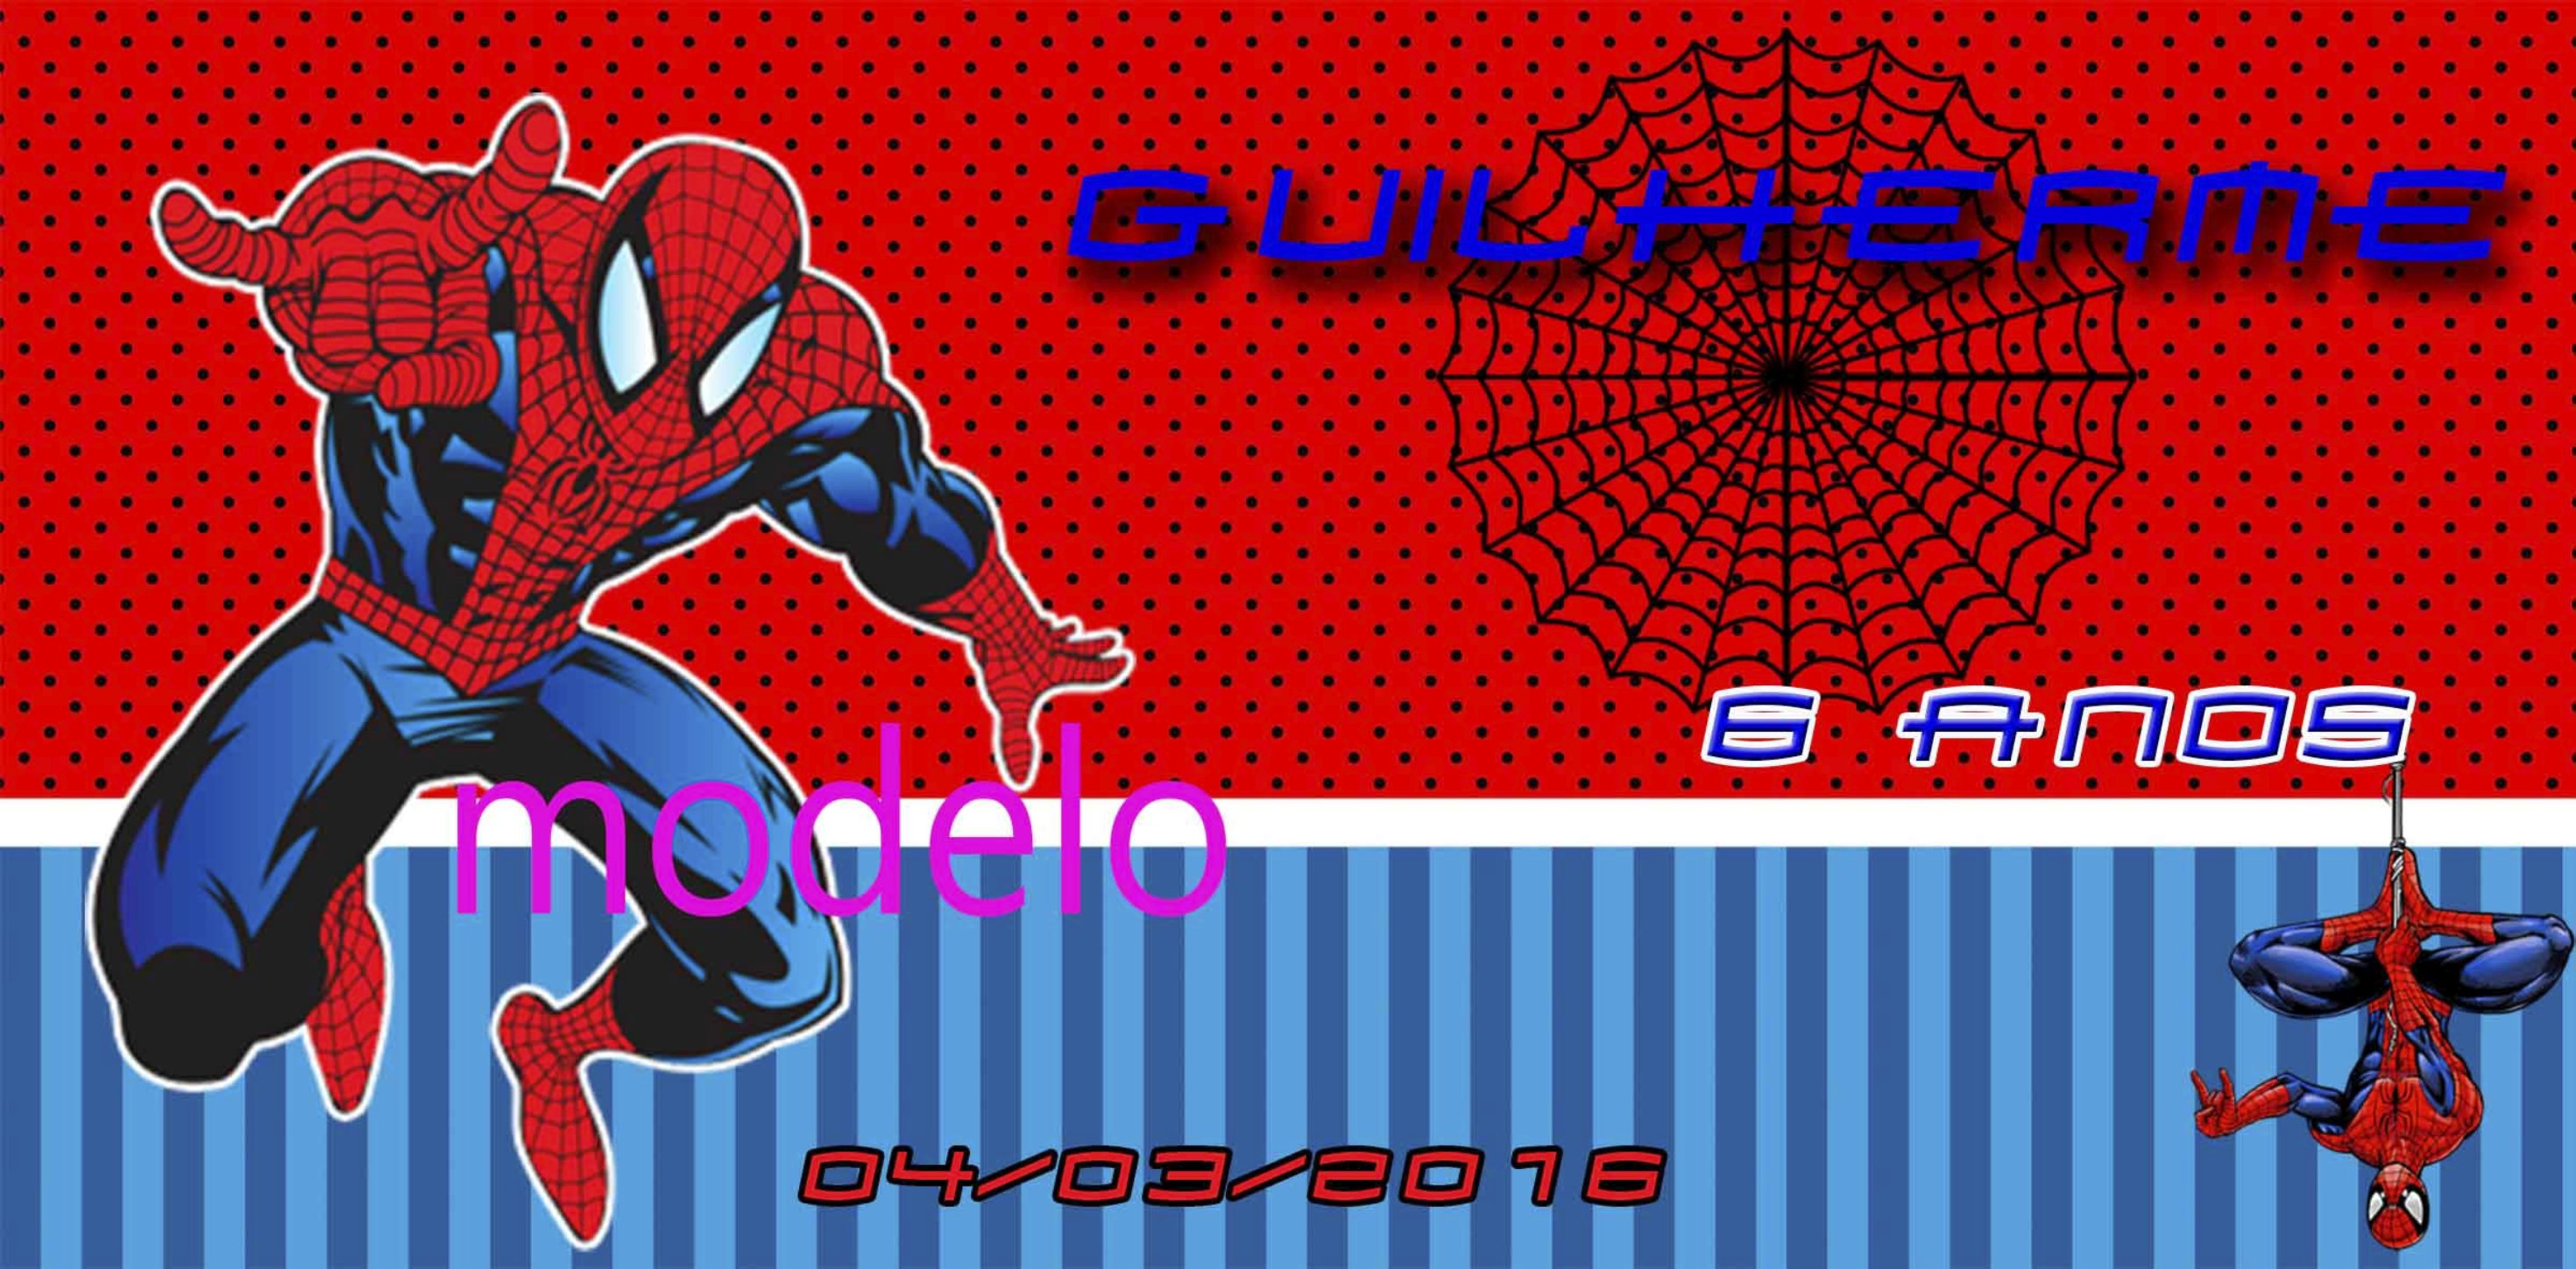 Spiderman Invitation is awesome invitations example